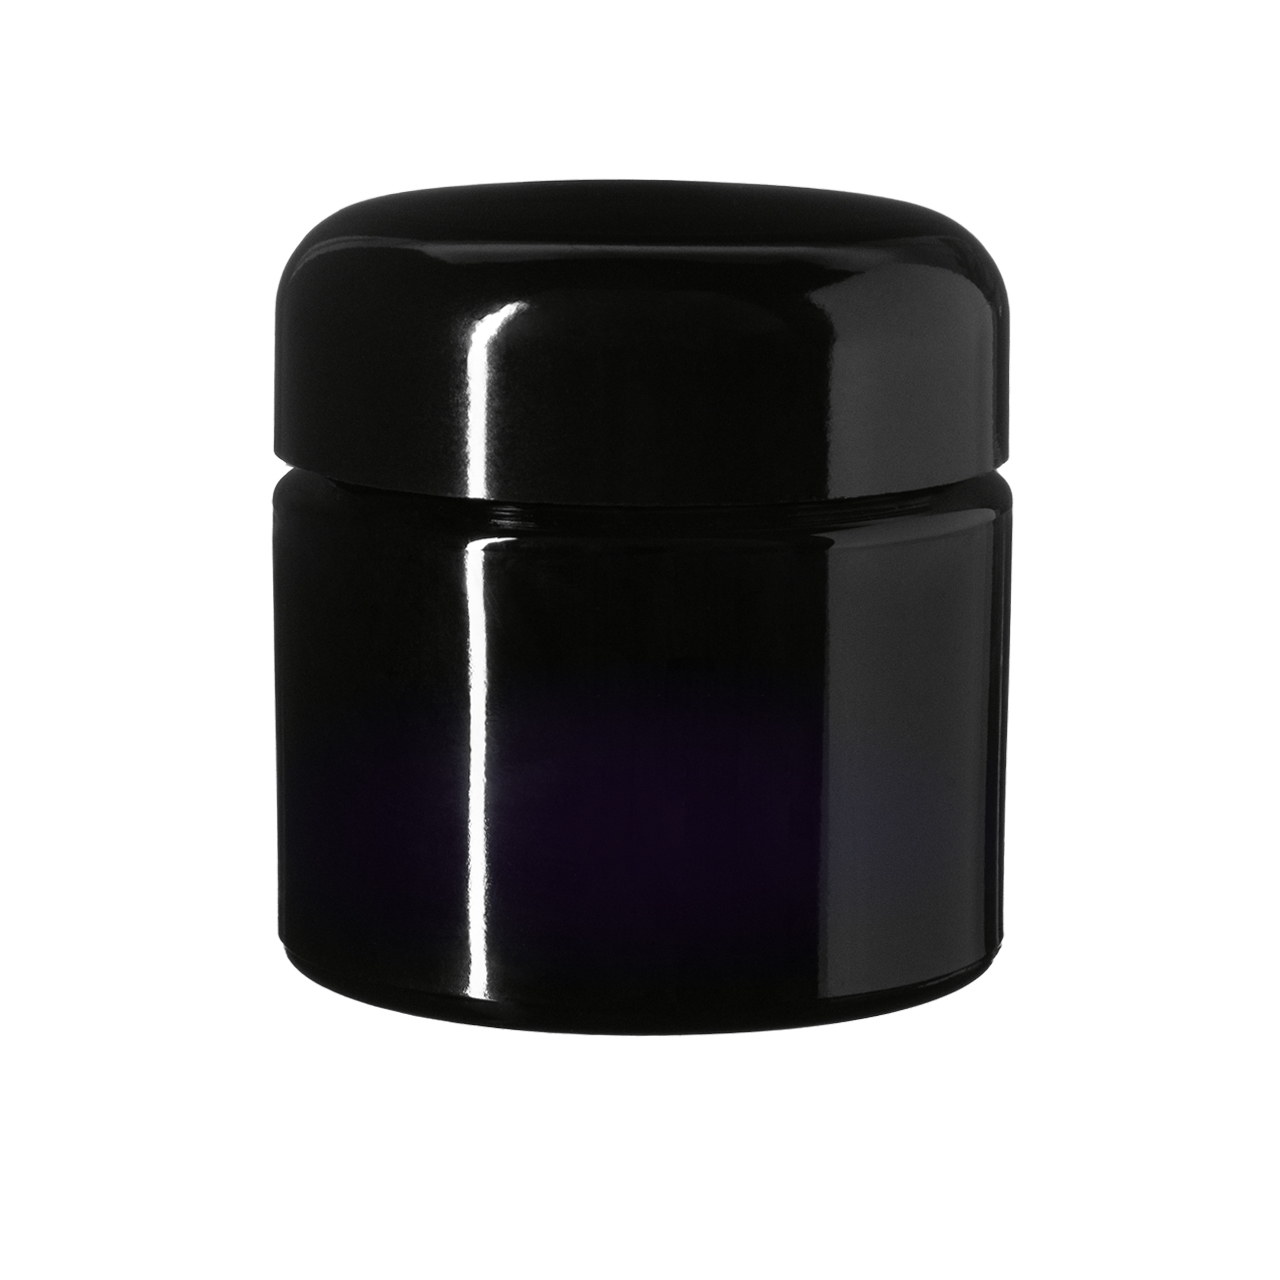 Lid Classic 58 special, Urea, black, semi-glossy finish with violet Phan inlay (for Ceres 100 & Carina 500)